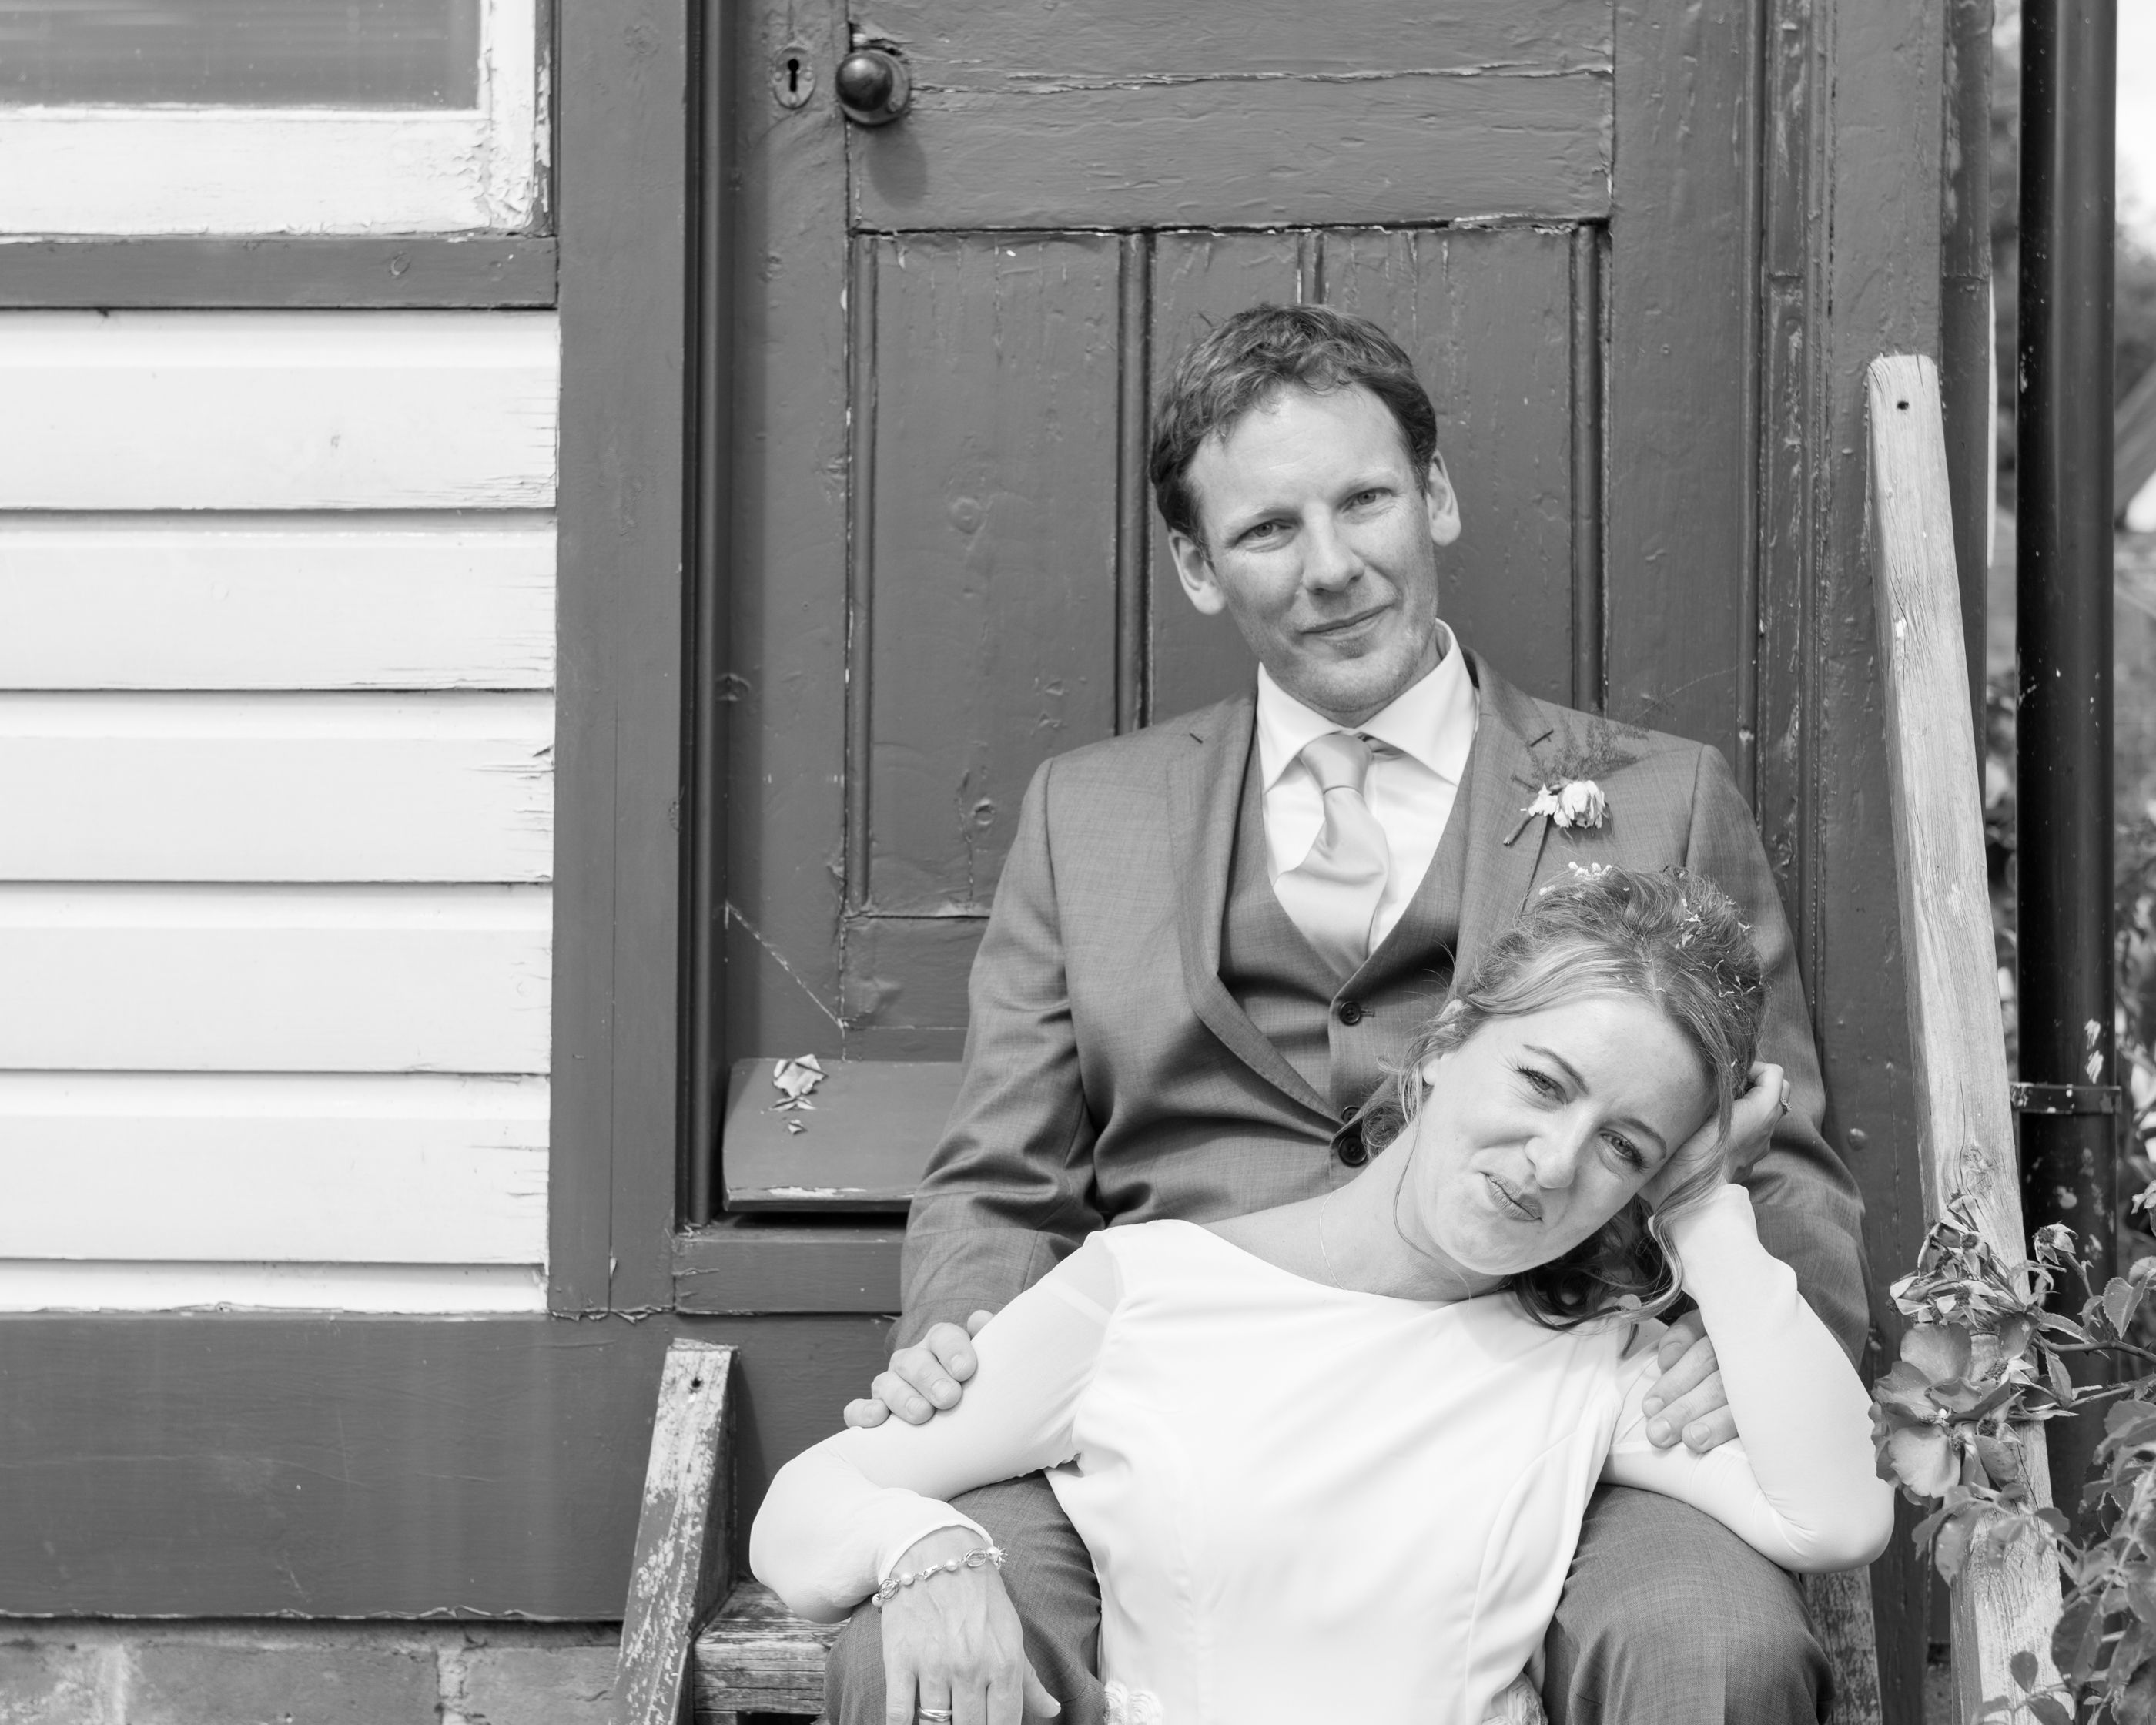 black and white country side summer wedding photography